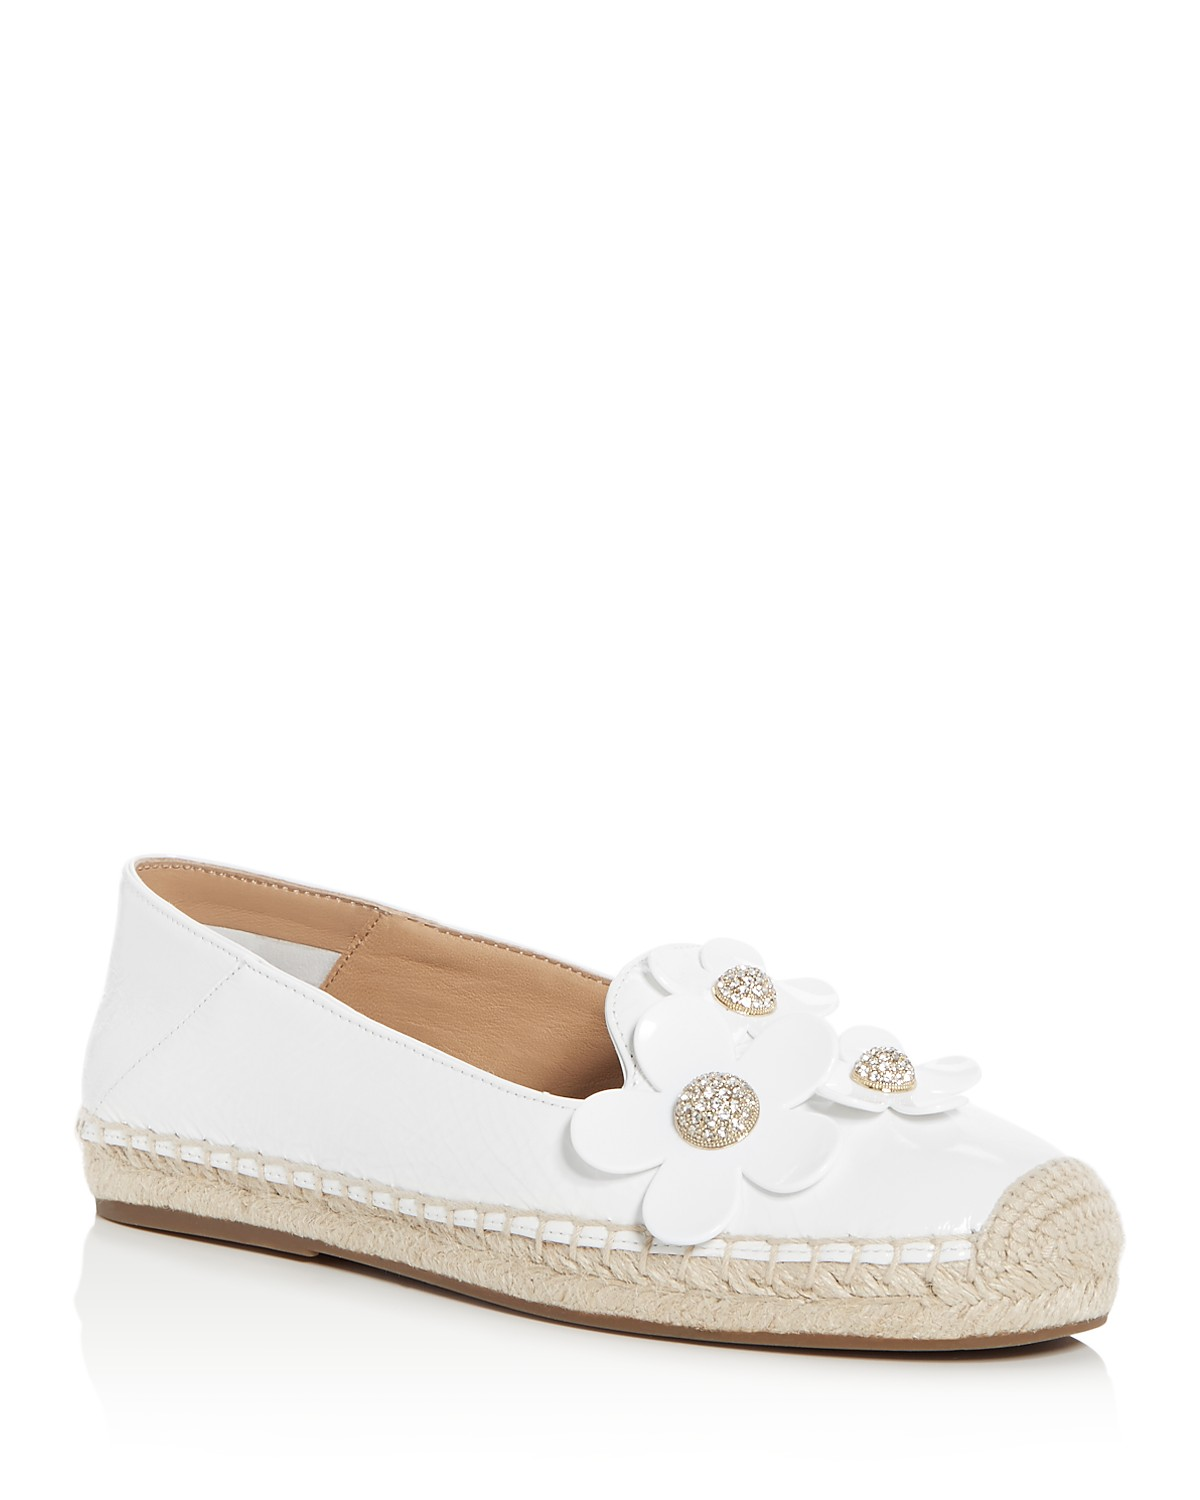 Marc Jacobs Women's Patent Leather Daisy Embellished Espadrille Flats oHiA5xR